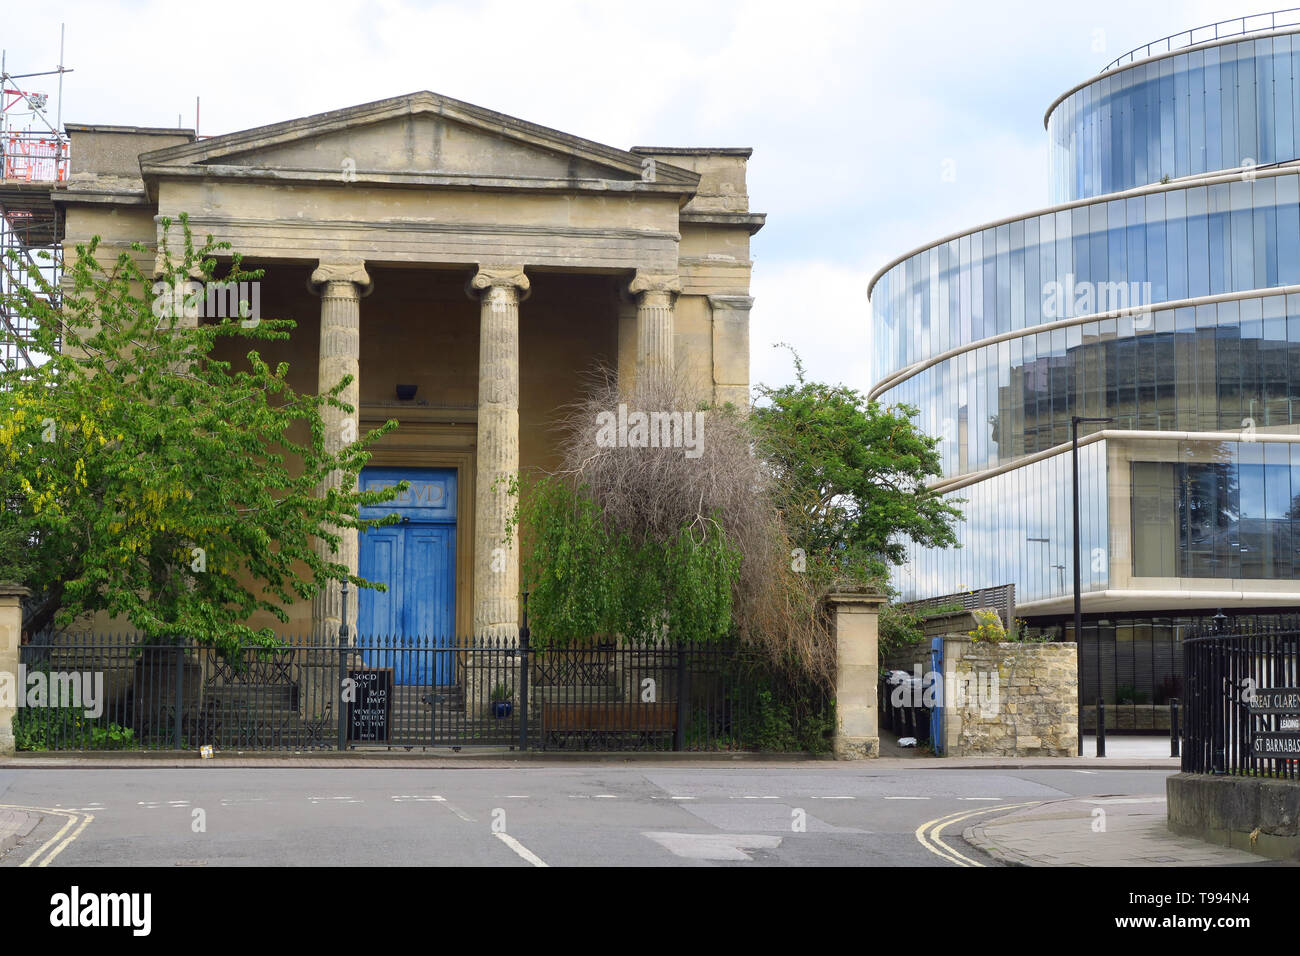 Freud Cafe on Walton Street, Oxford, The cafe is inside the former St Paul's Church. The Blavatnik School of Government is on the right - Stock Image